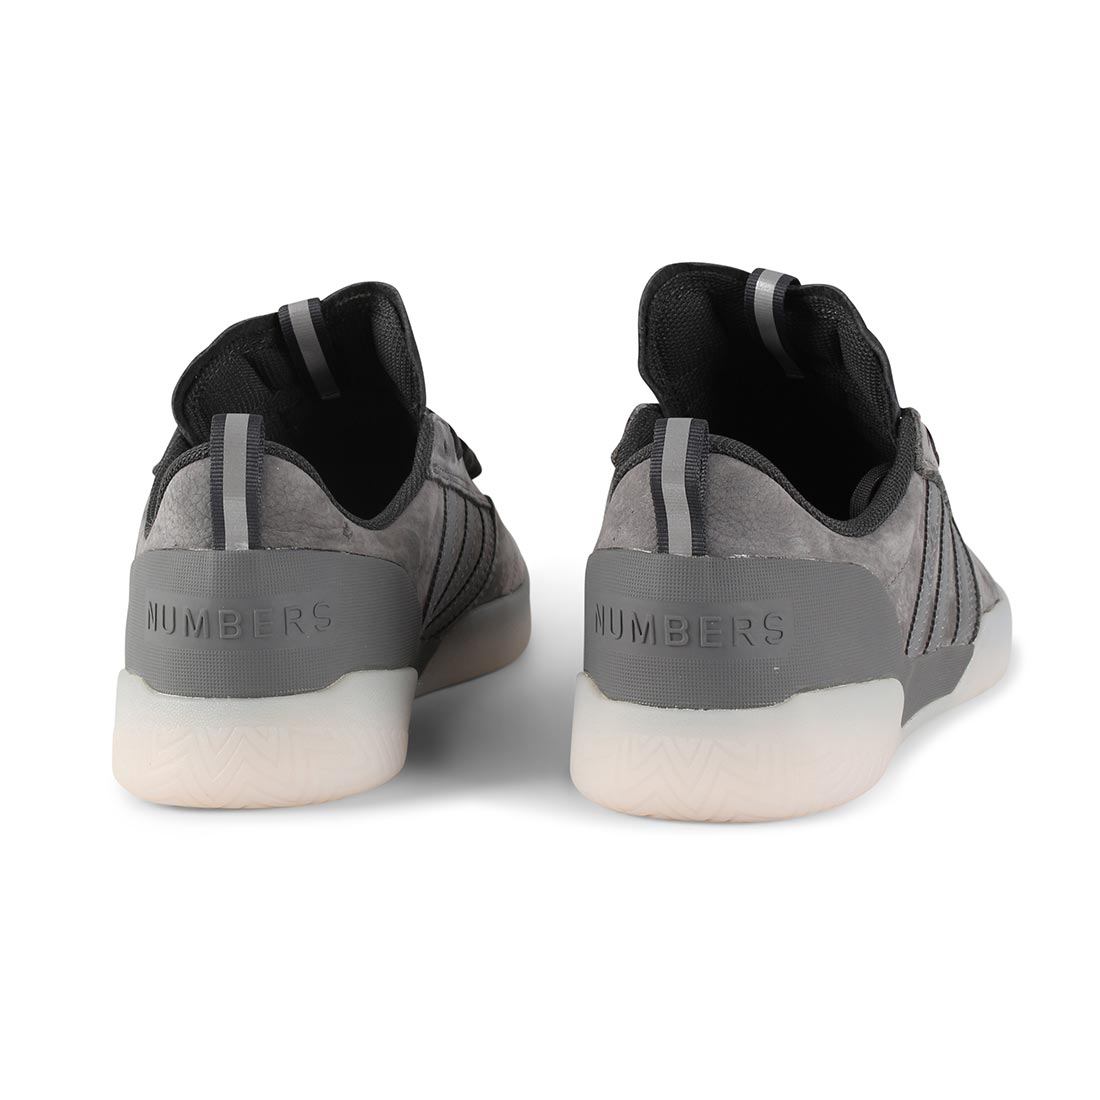 promo code 9af65 6e990 ... Adidas-Numbers-City-Cup-Shoes-Grey-Four-Carbon ...